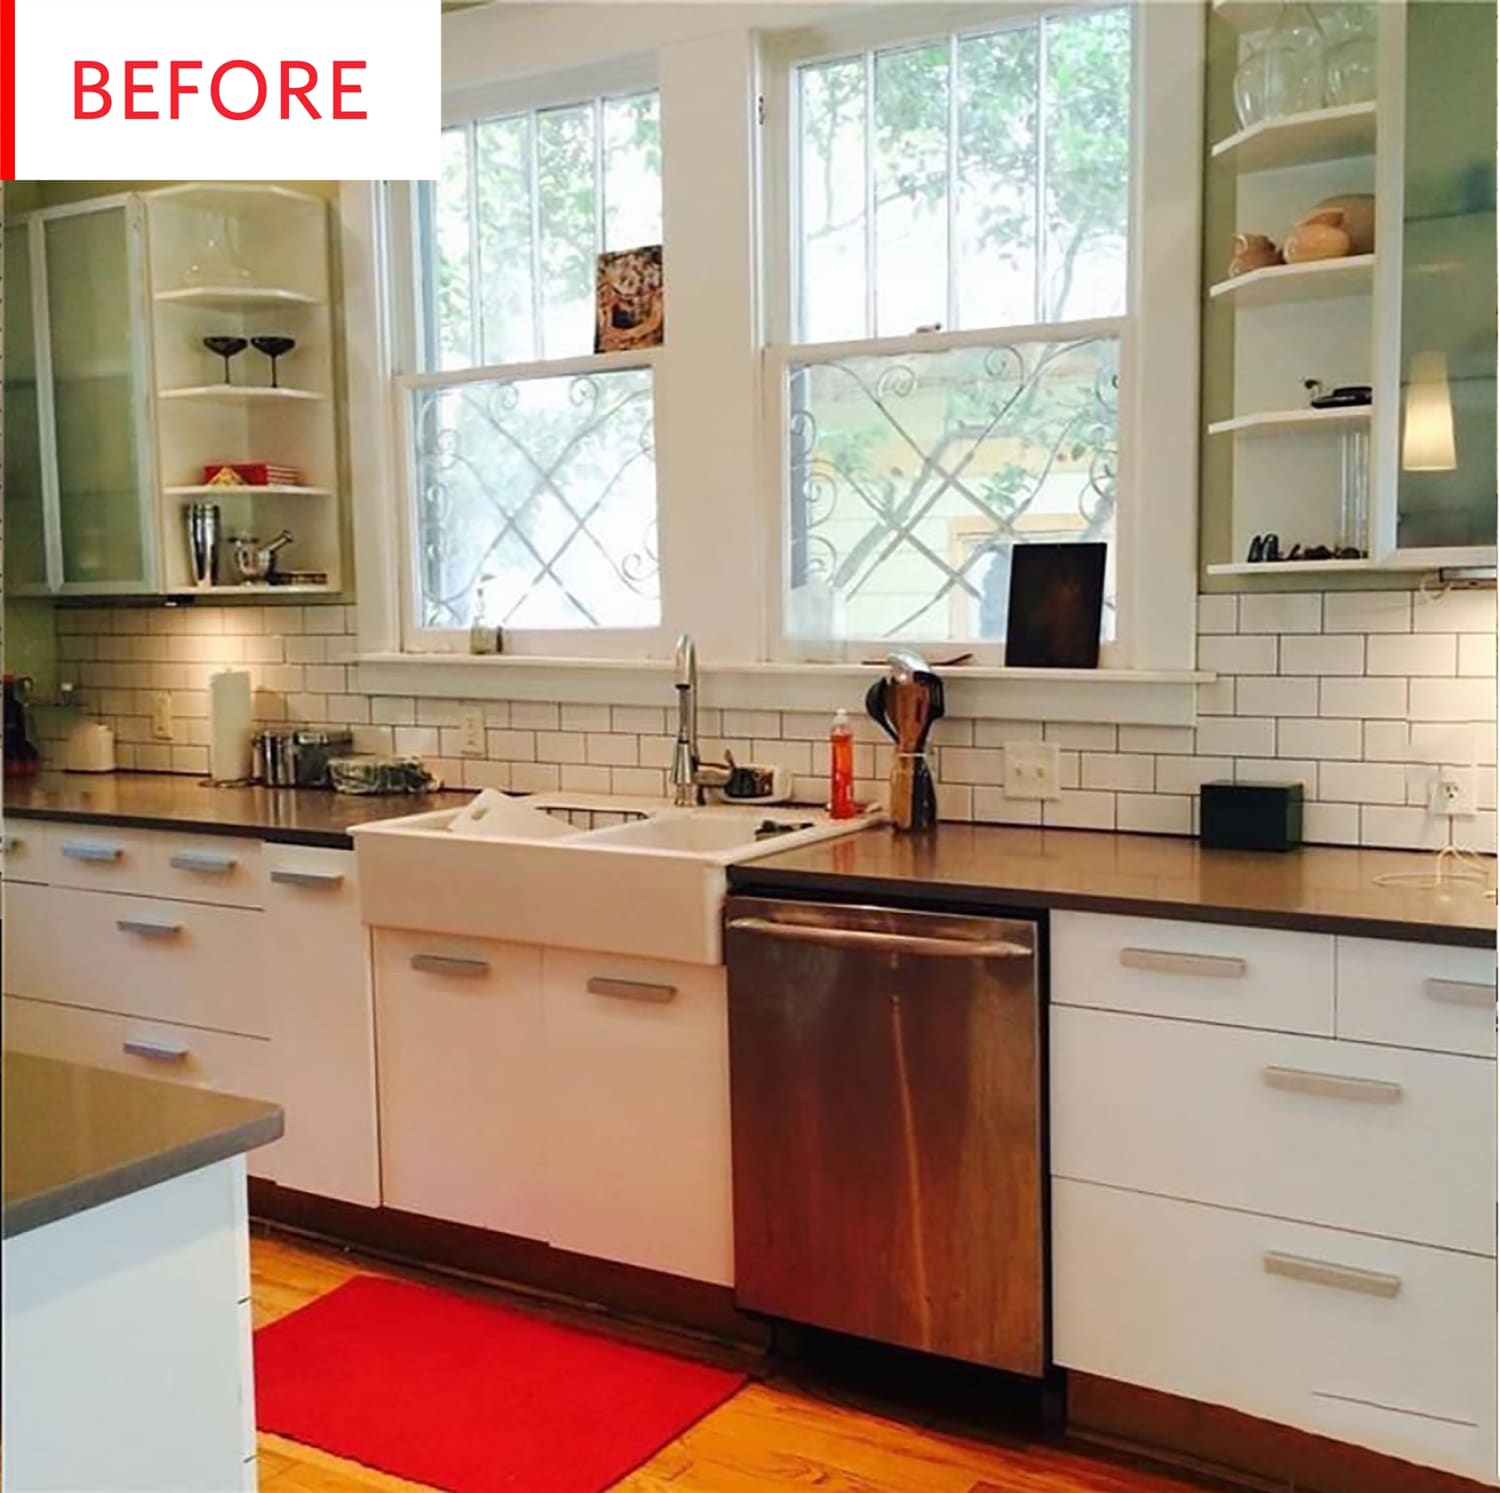 Before & After: This Kitchen's $7,500 Facelift Was a Smart Use of Money